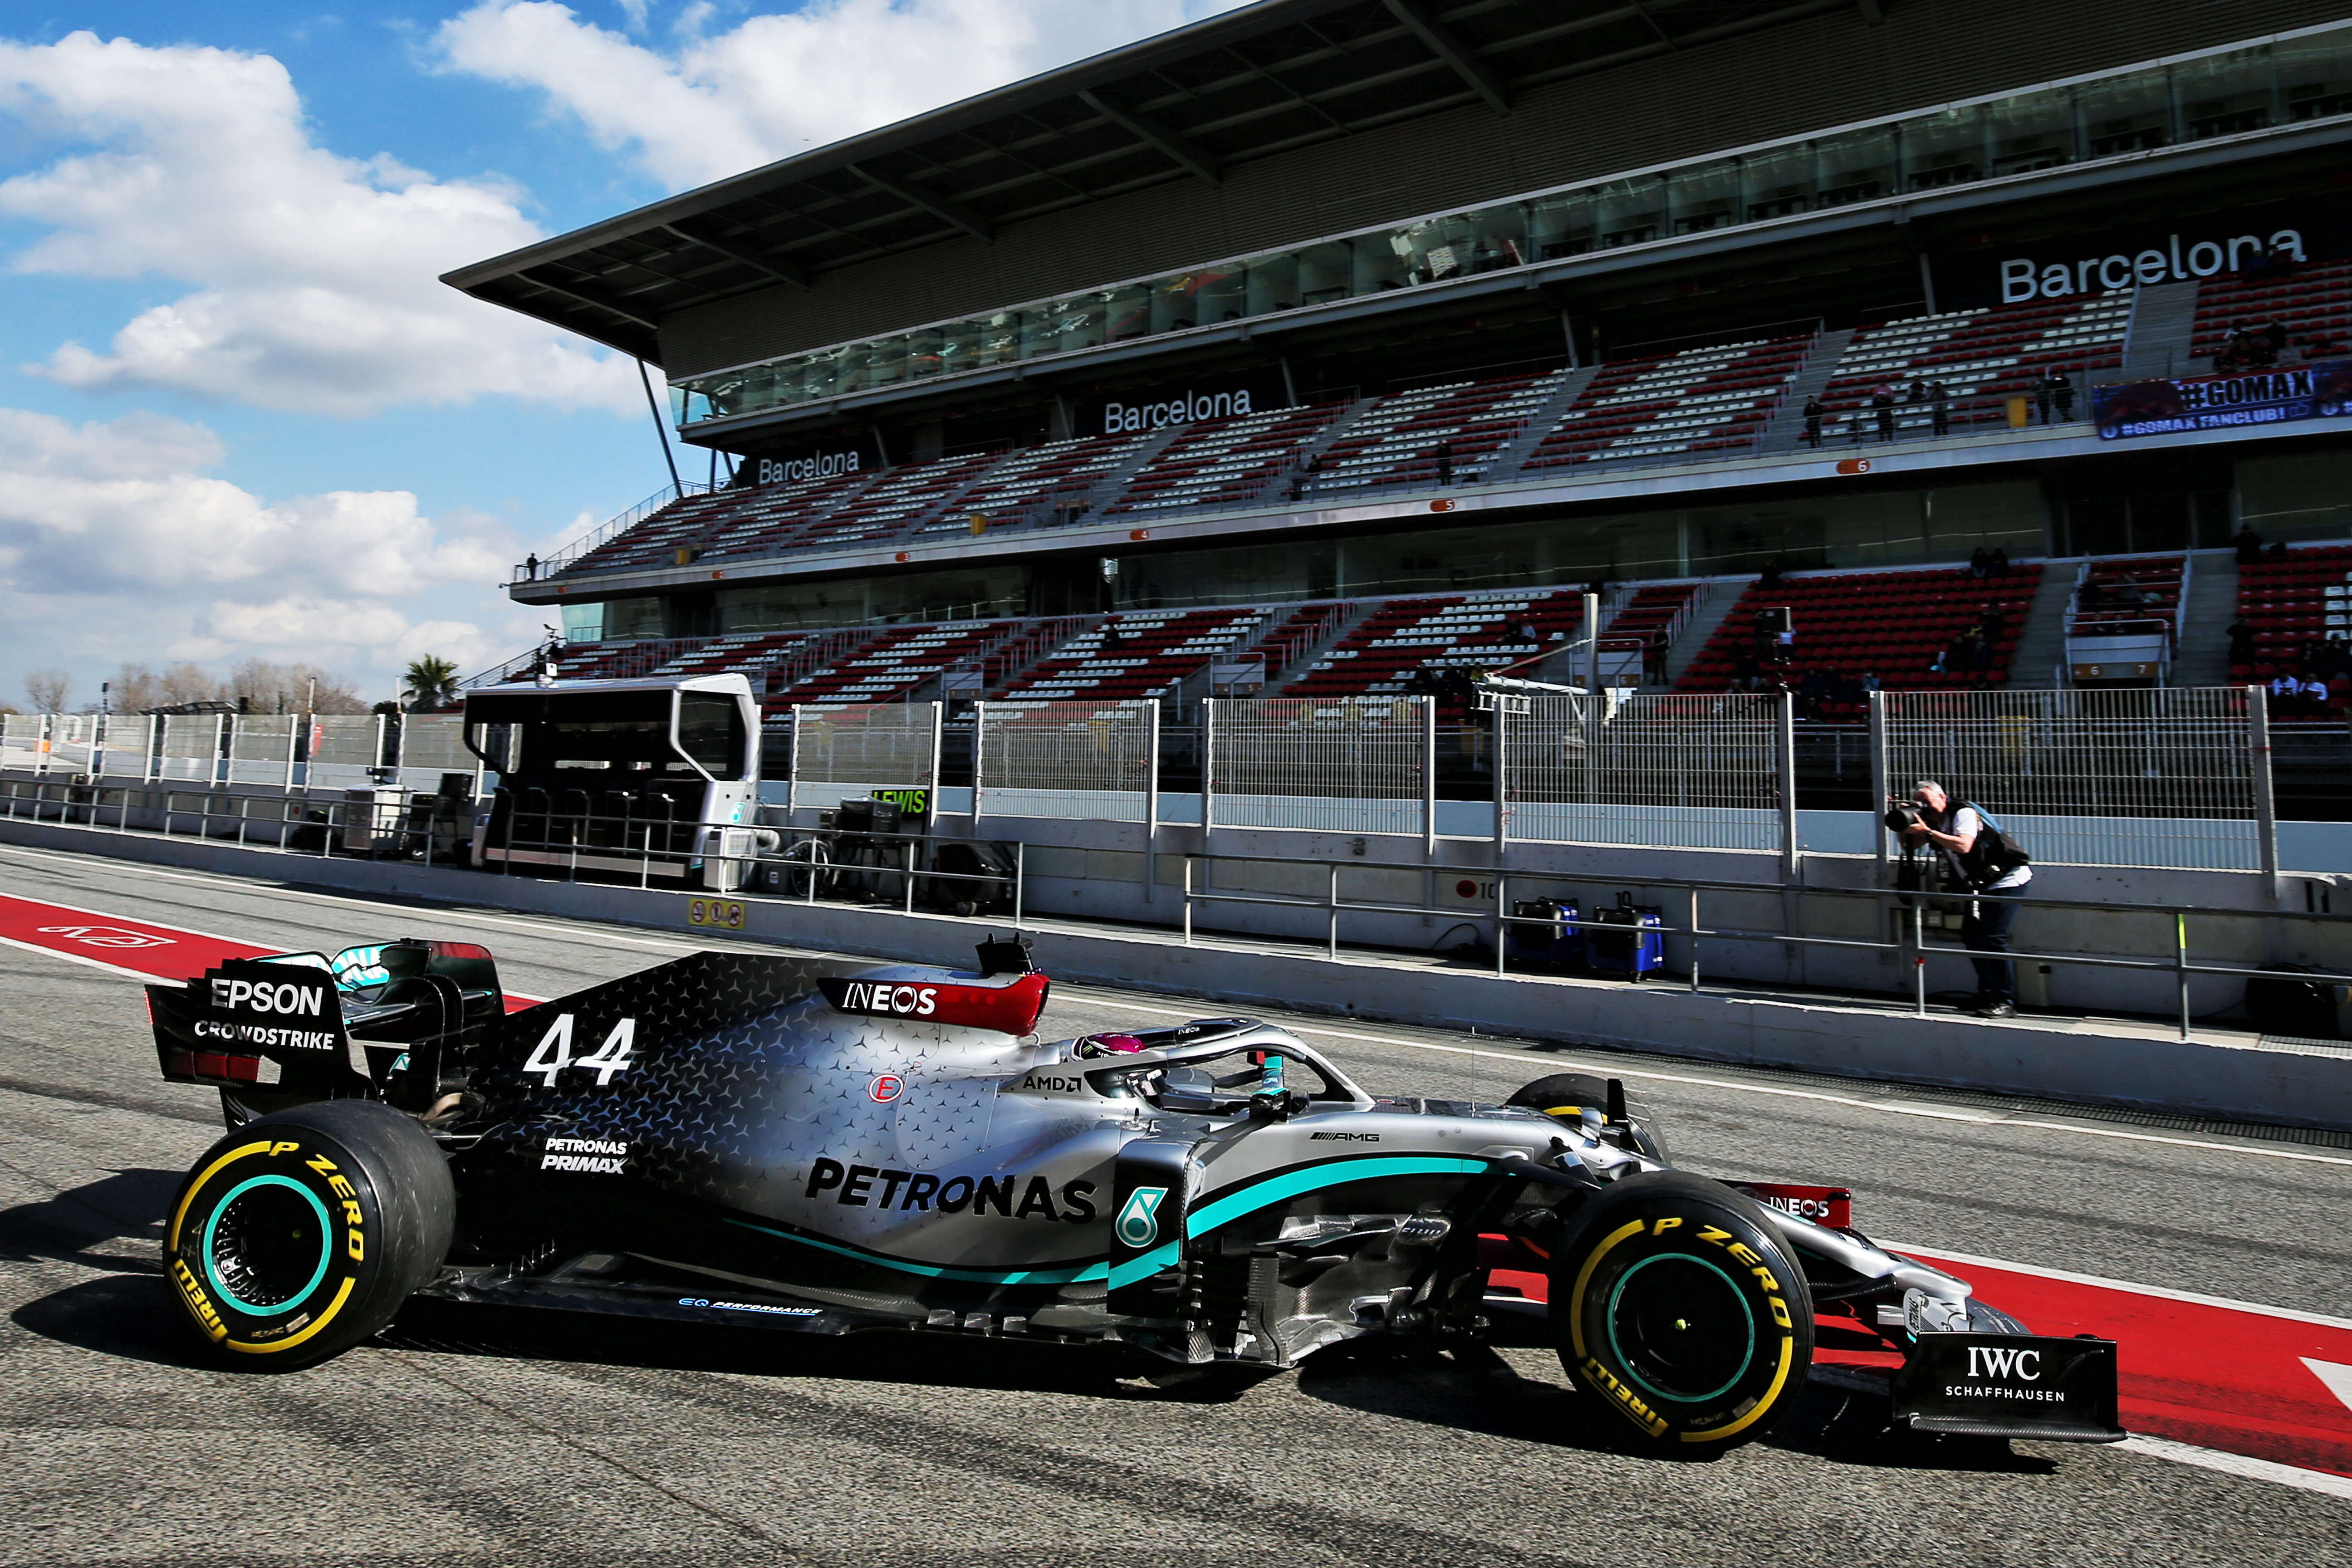 Motor Racing Formula One Testing Test One Day 1 Barcelona, Spain